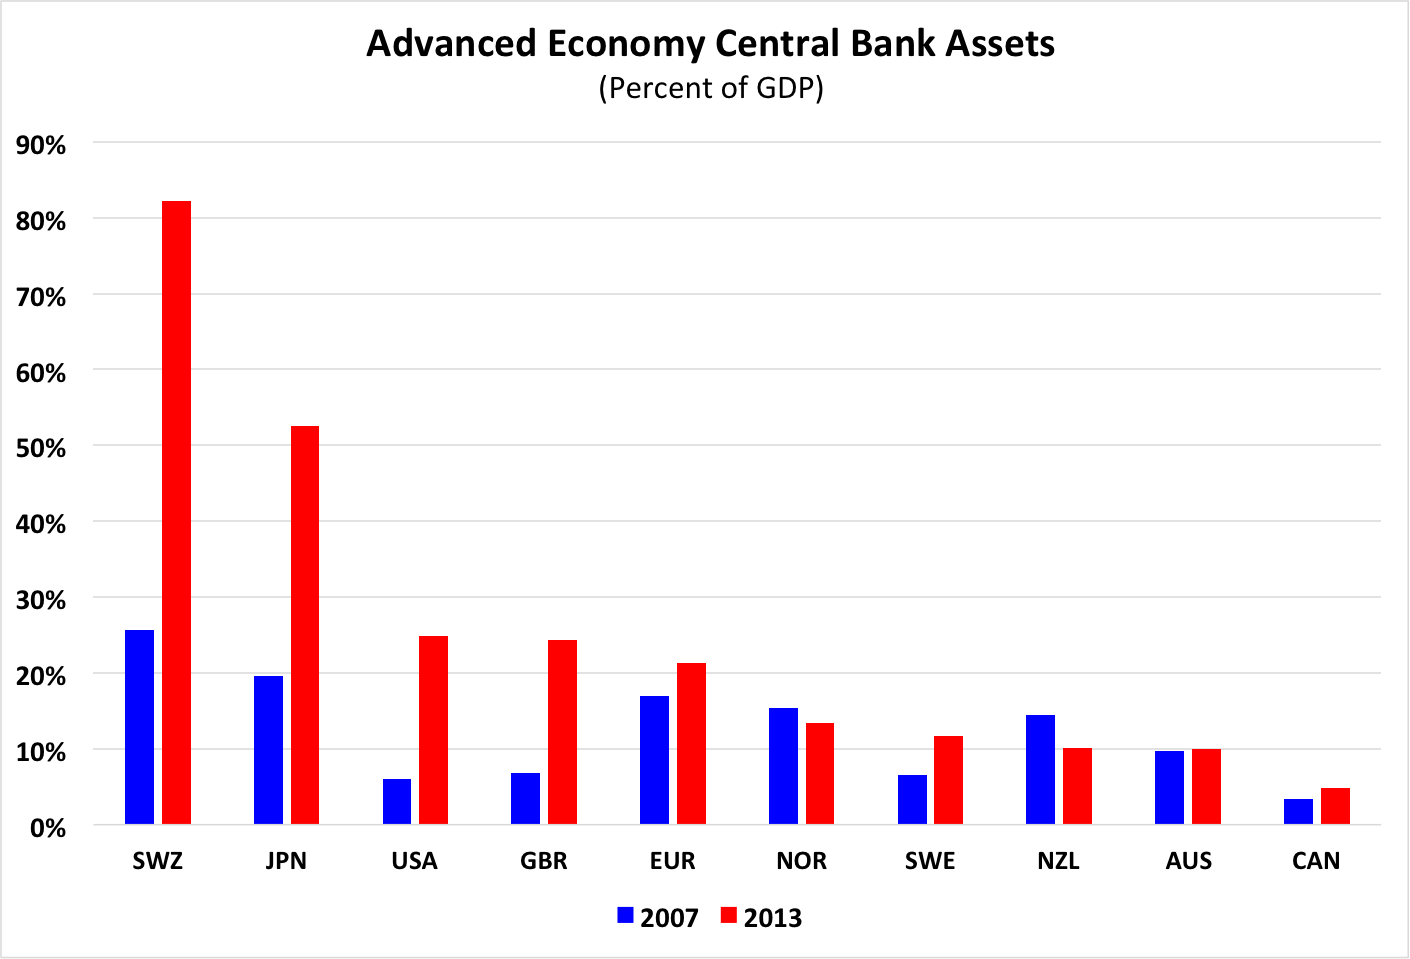 Sources: National central banks and IMF.